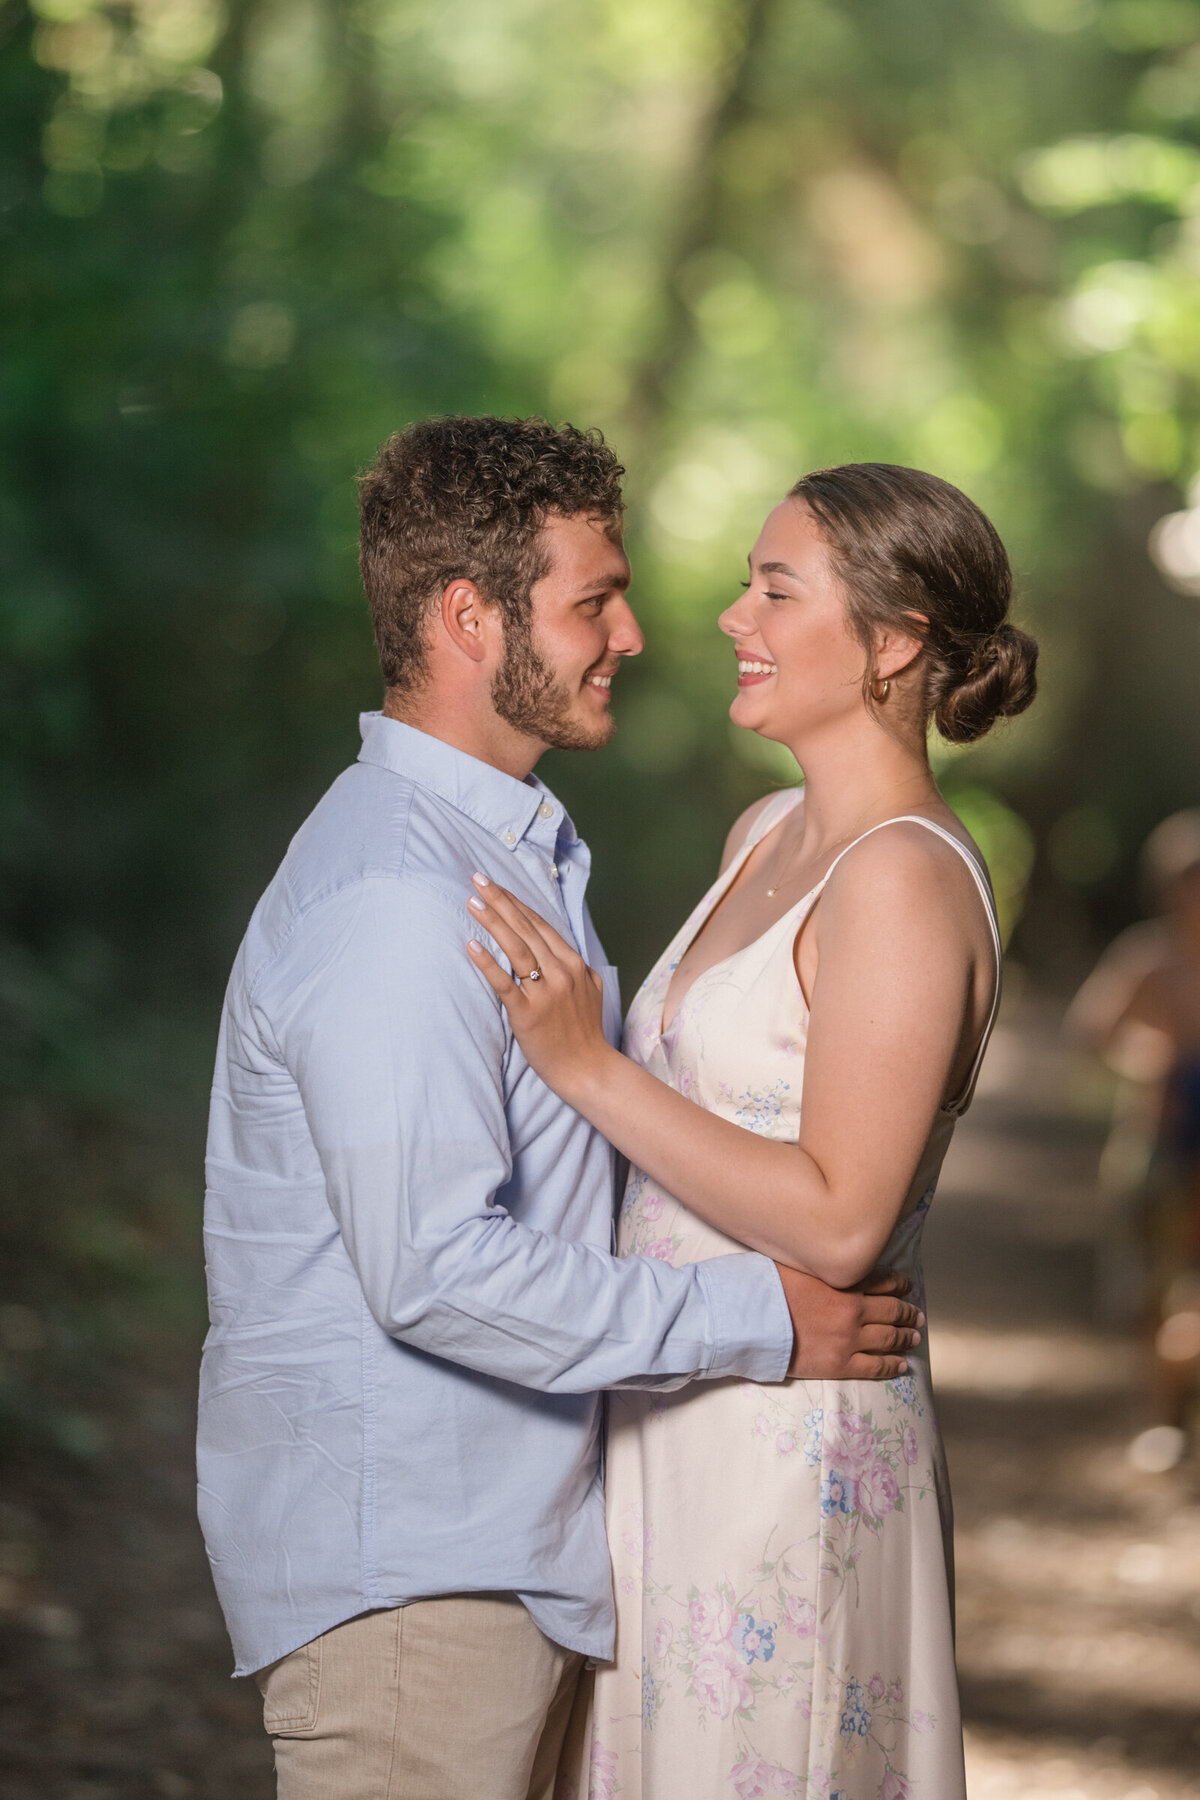 Humboldt-County-Engagement-Photographer-Beach-Engagement-Humboldt-Trinidad-College-Cove-Trinidad-State-Beach-Nor-Cal-Parky's-Pics-Coastal-Redwoods-Elopements-1